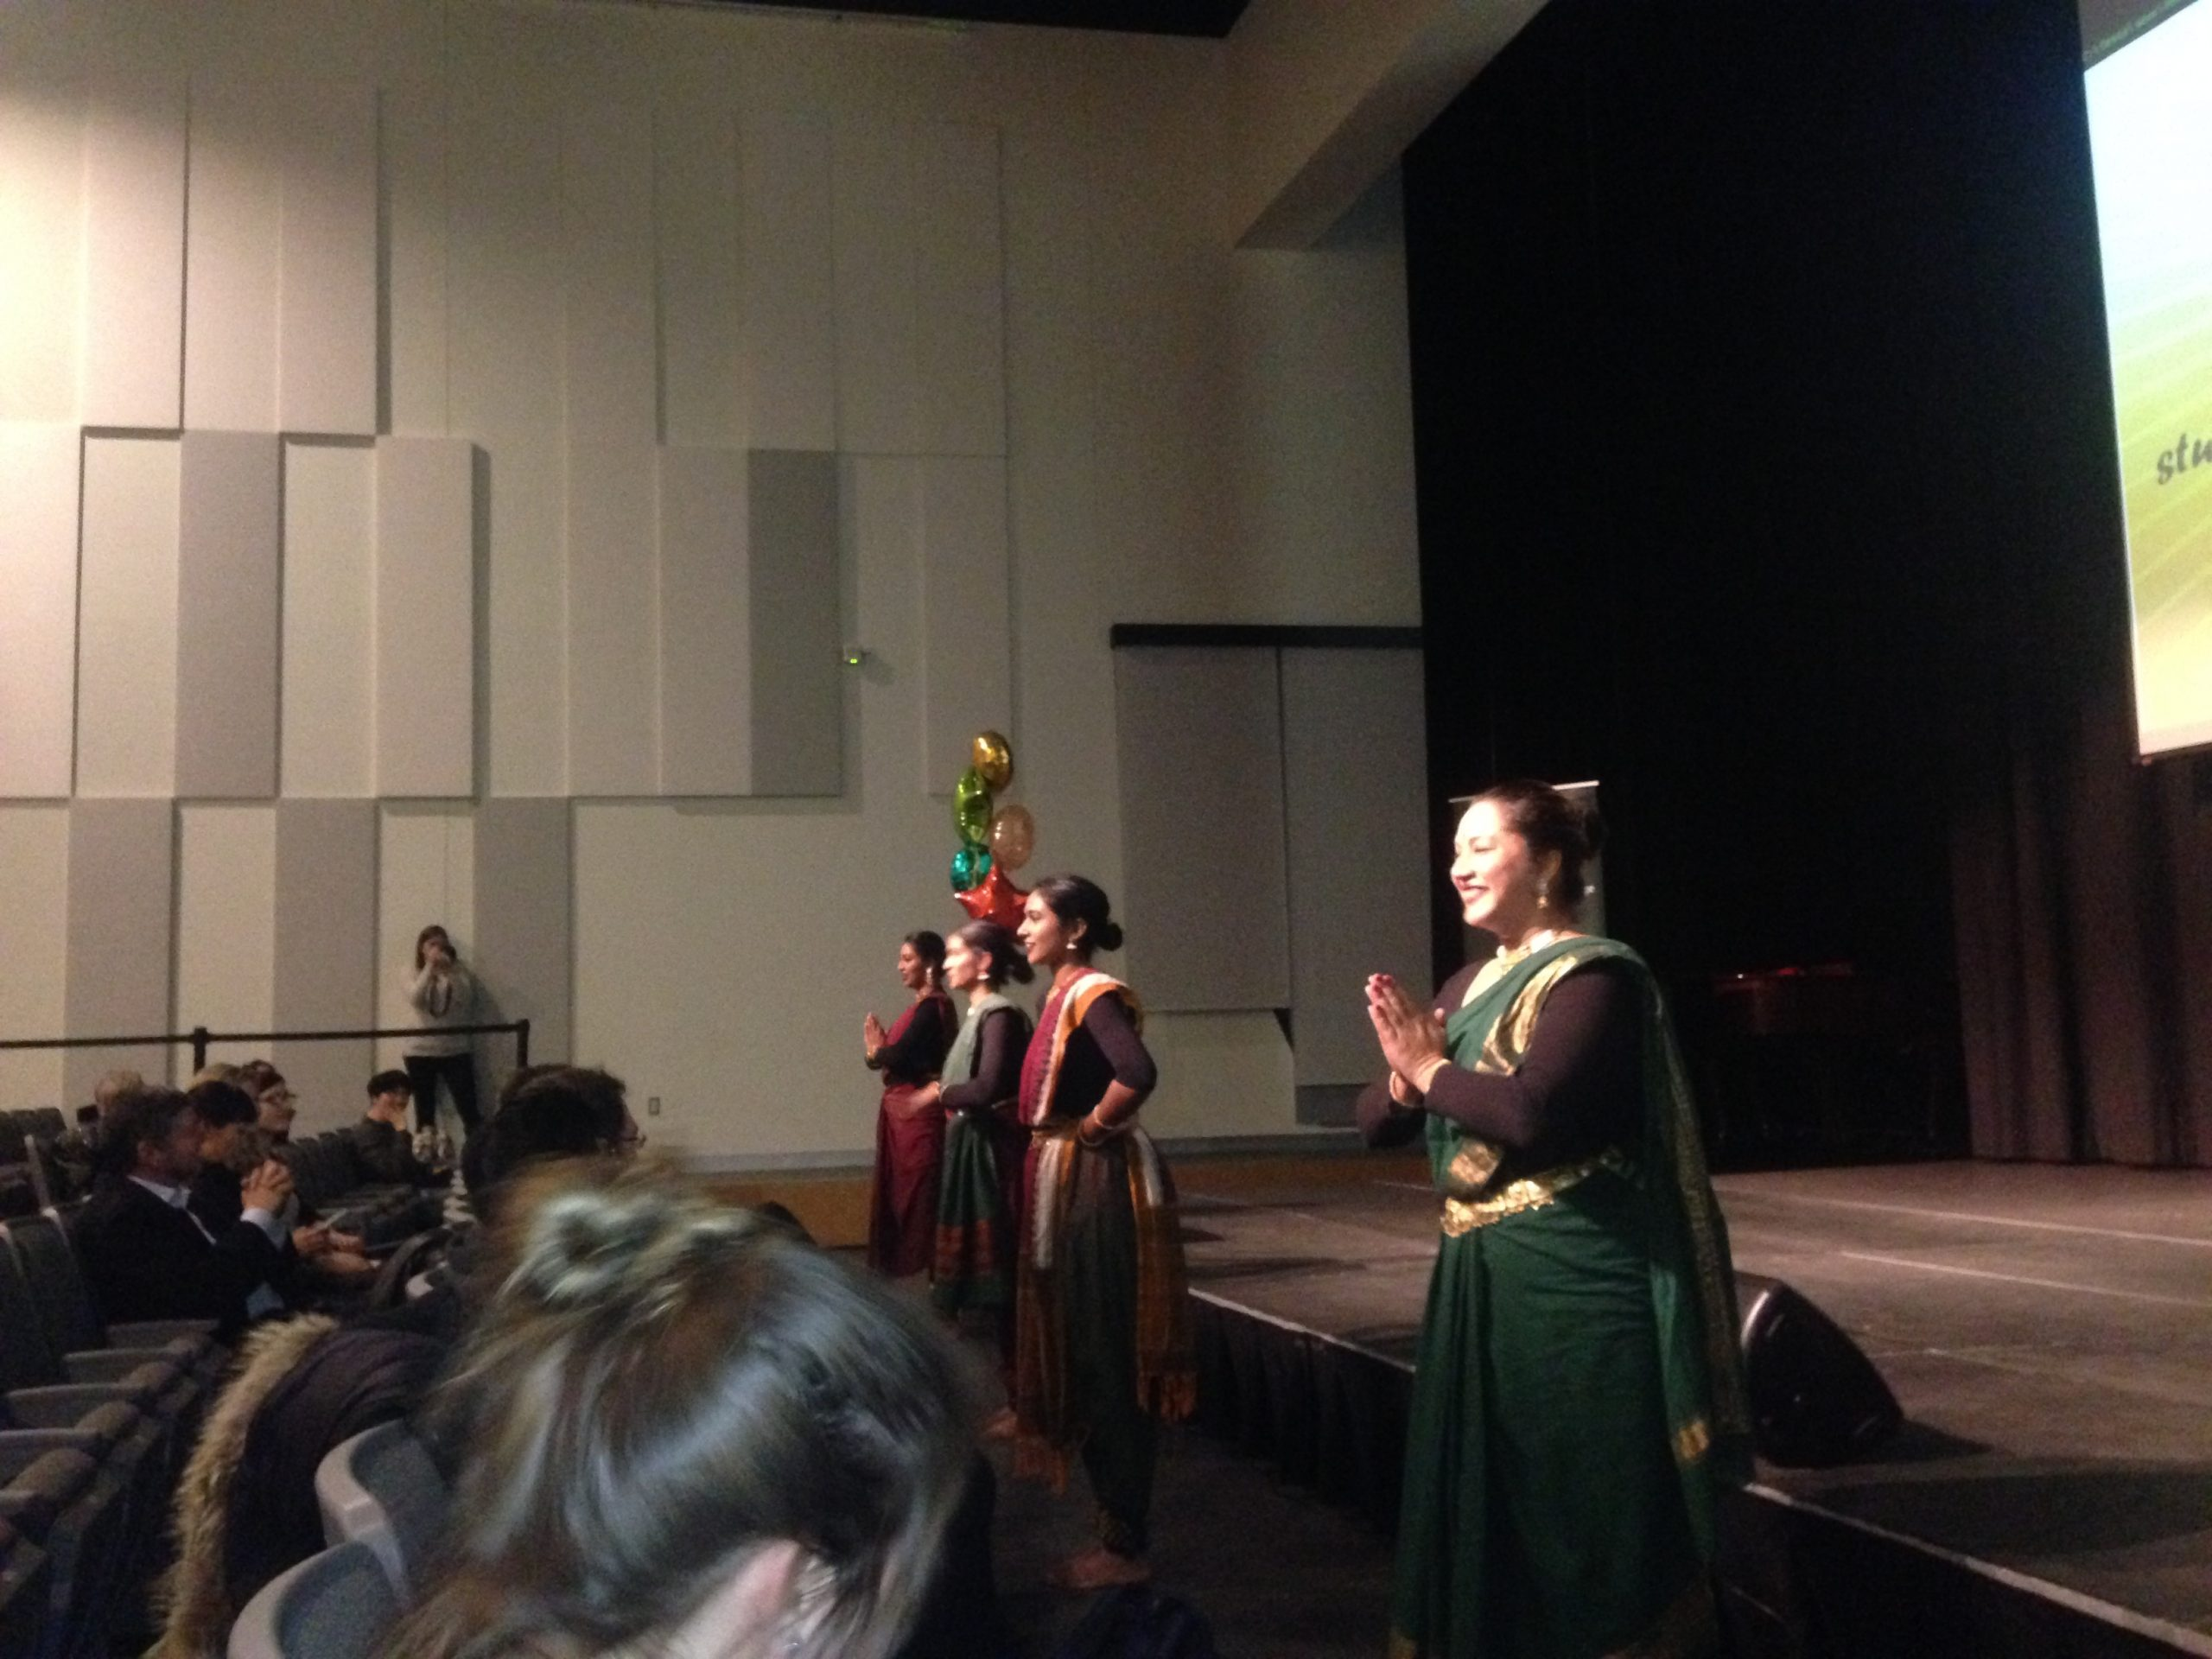 King's Celebrating the 14th Annual Culture Festival